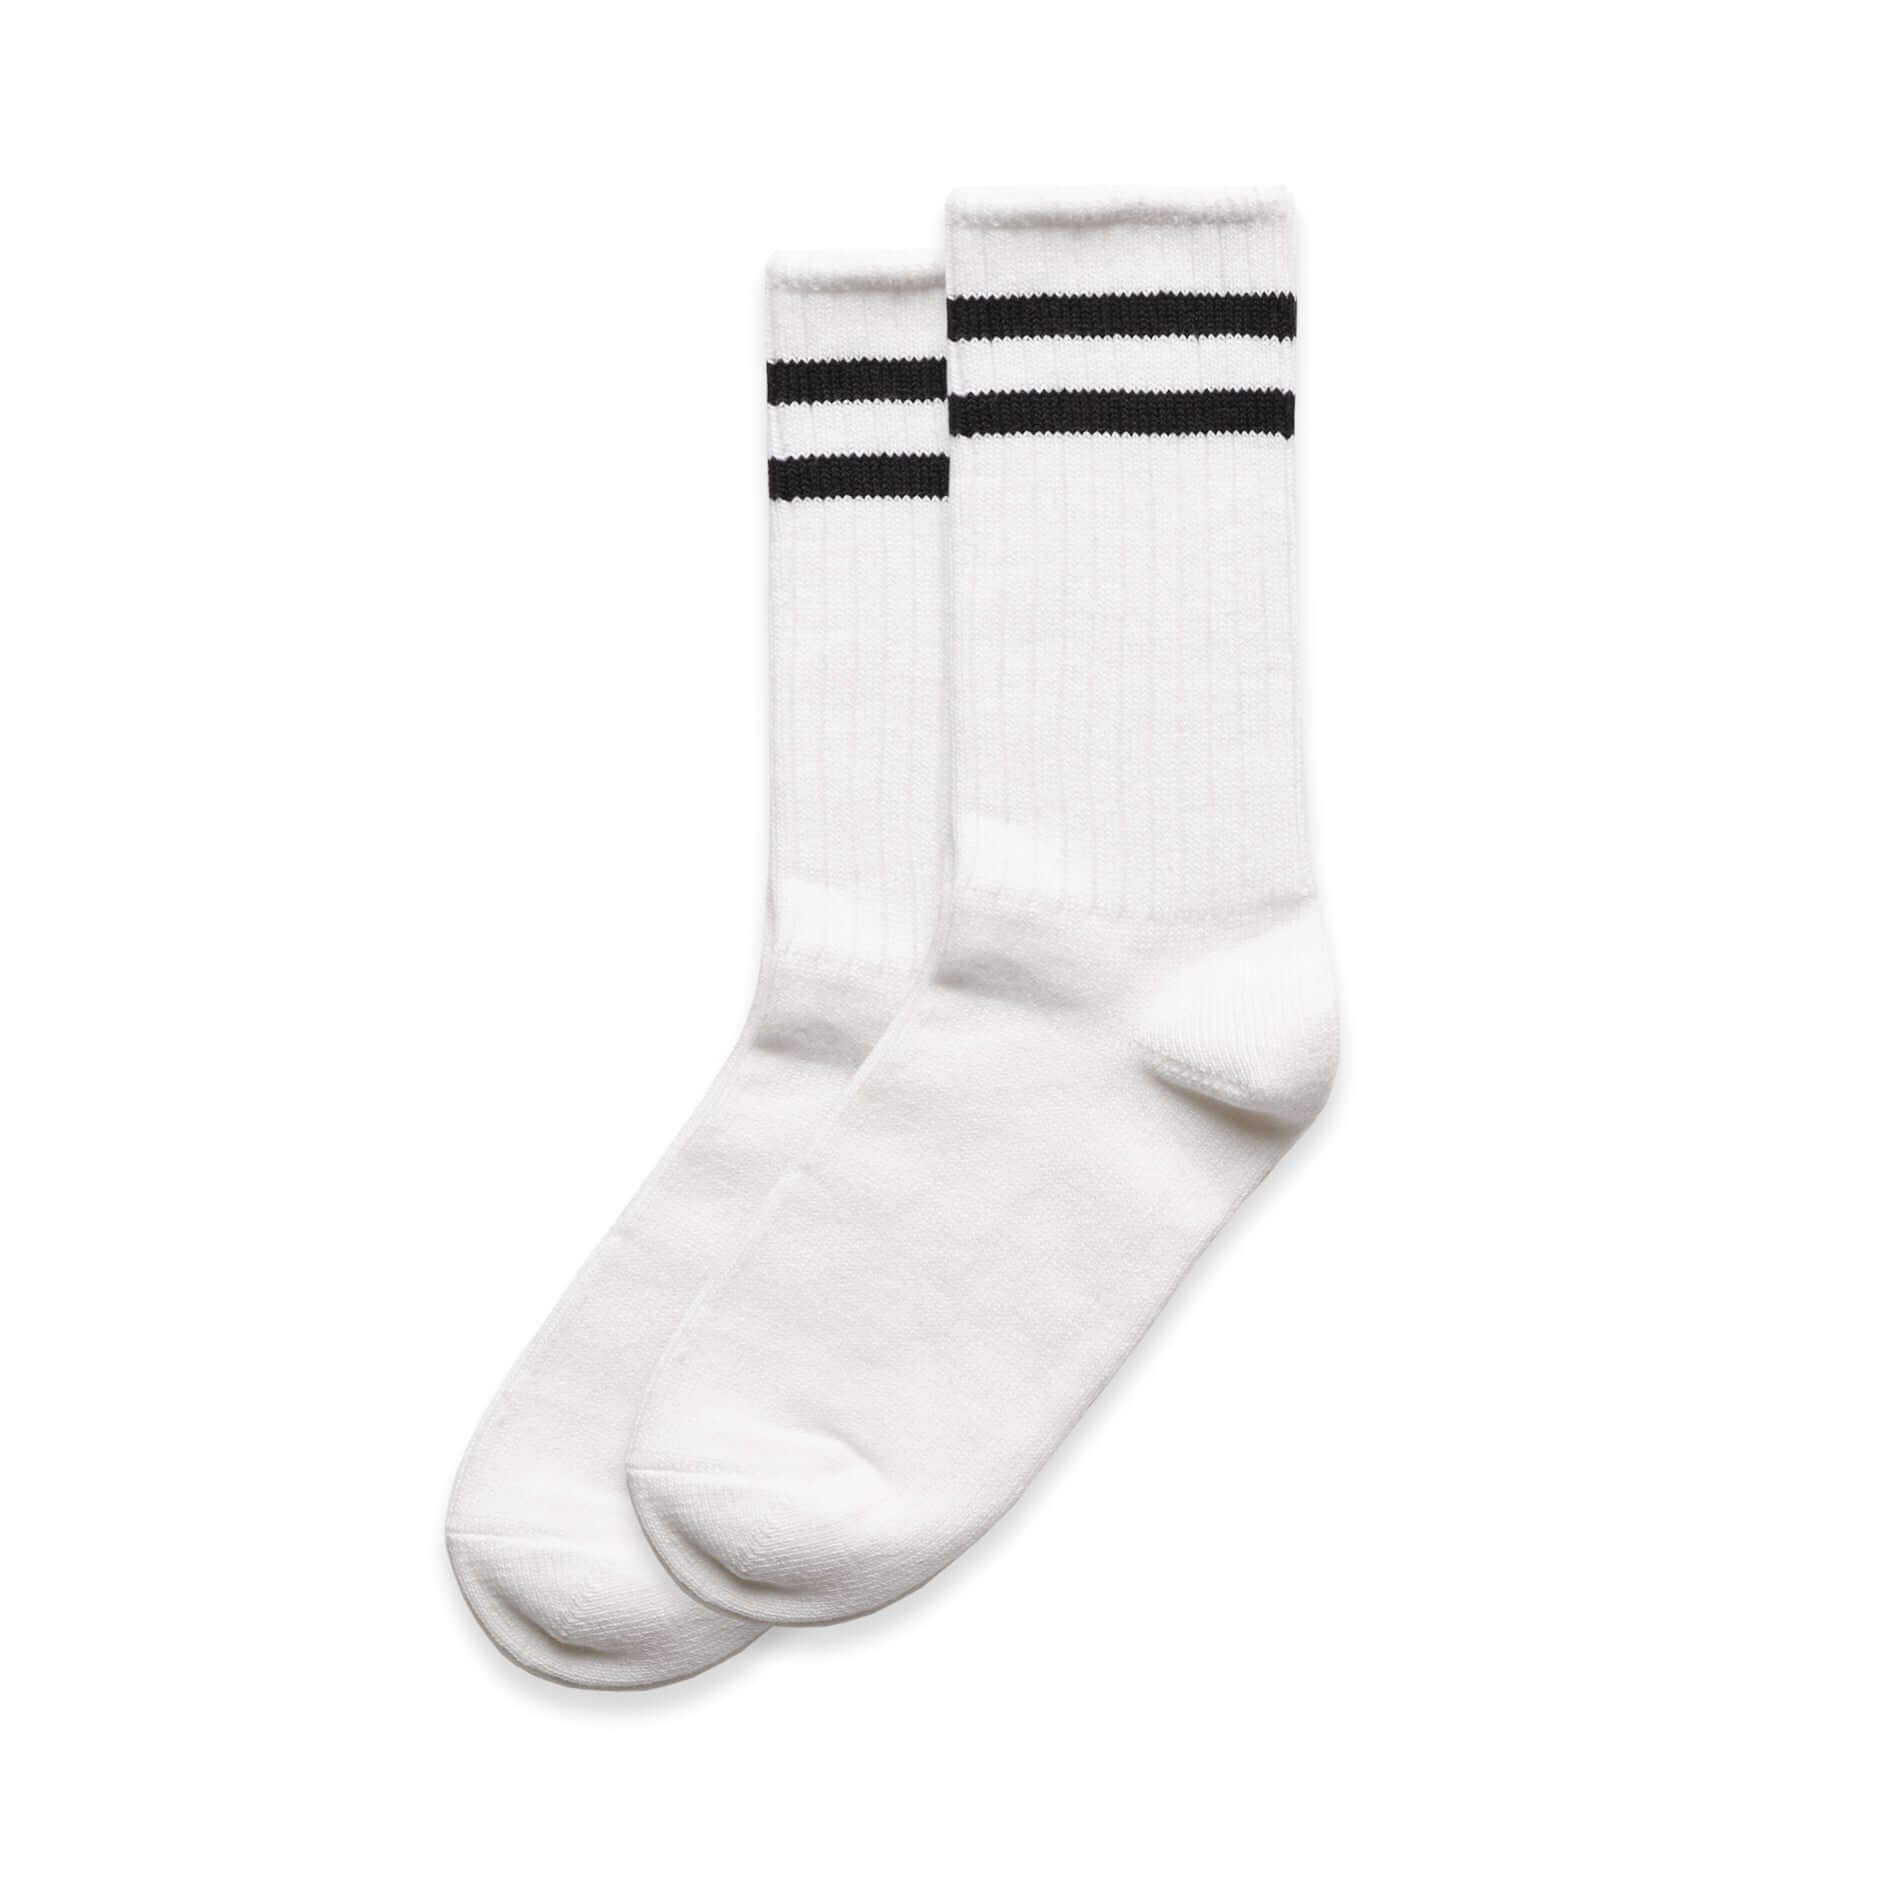 AS Colour TUBE SOCKS - White